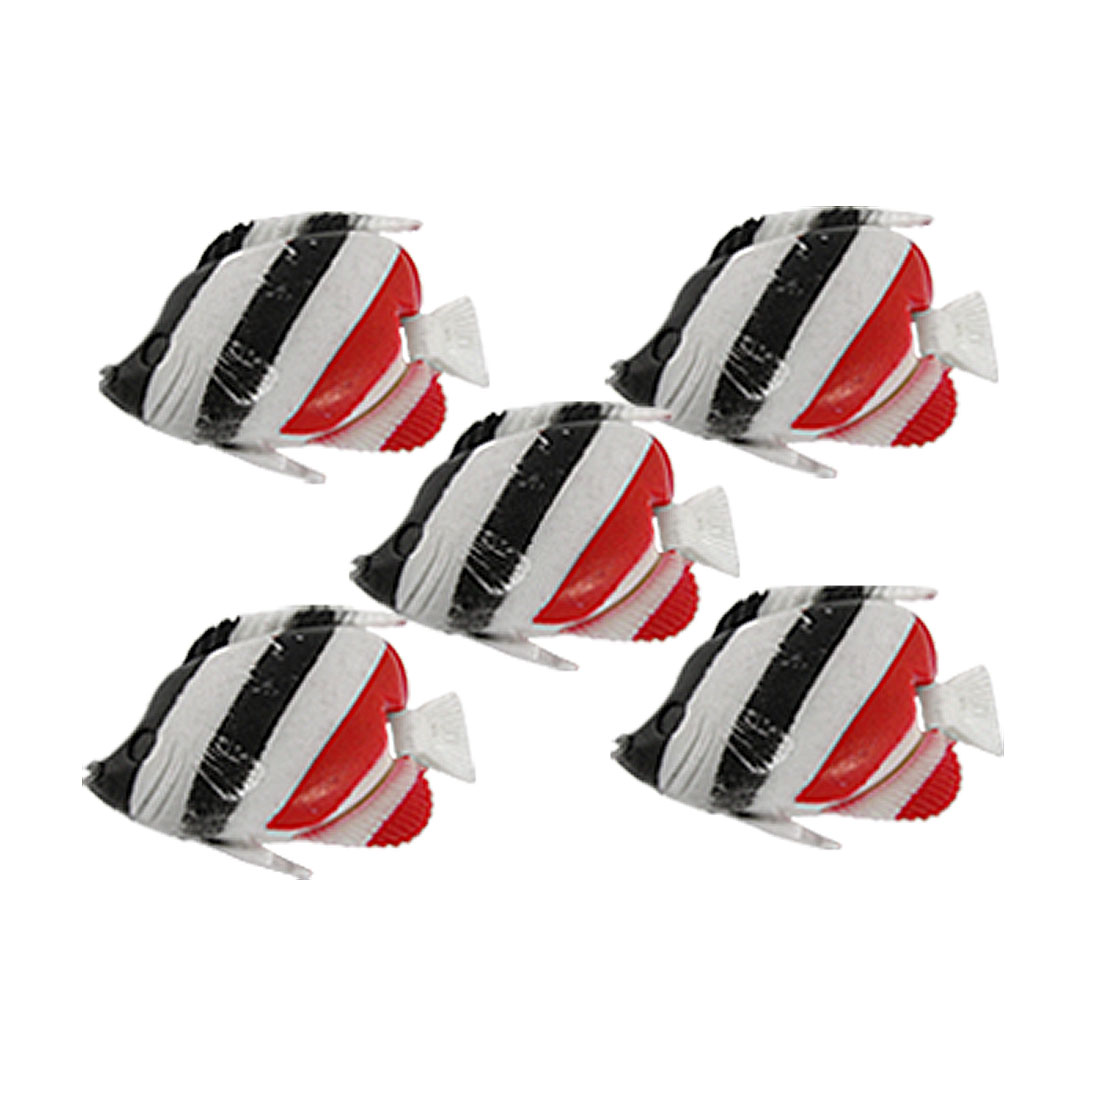 Stripe Pattern Plastic Fish Decoration Aquarium Tank Ornament